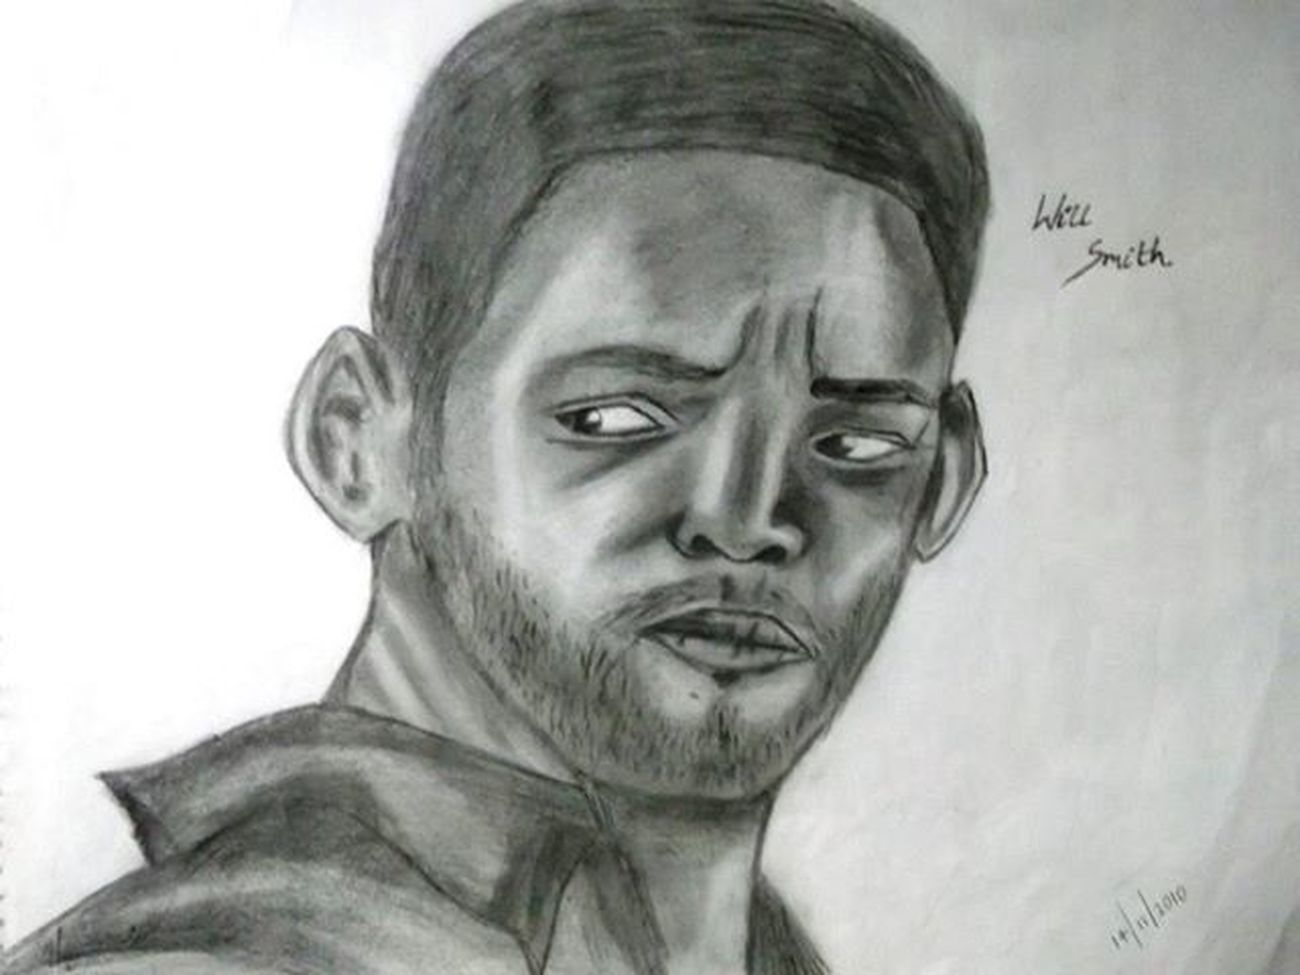 This was my 3RD PORTRAIT SKETCH probably back in 2010...Willsmith..inspired by HANCOCK.. Willsmith Willsmithquotes Funky Meninblack Entertainer Best  Persuitofhappiness Artist Artist Gallery Sketch Sketchers Pencilsketch Portrait Imperfection Hobby NotTRAINED Inspiration Kickass Loved LetsGetIt